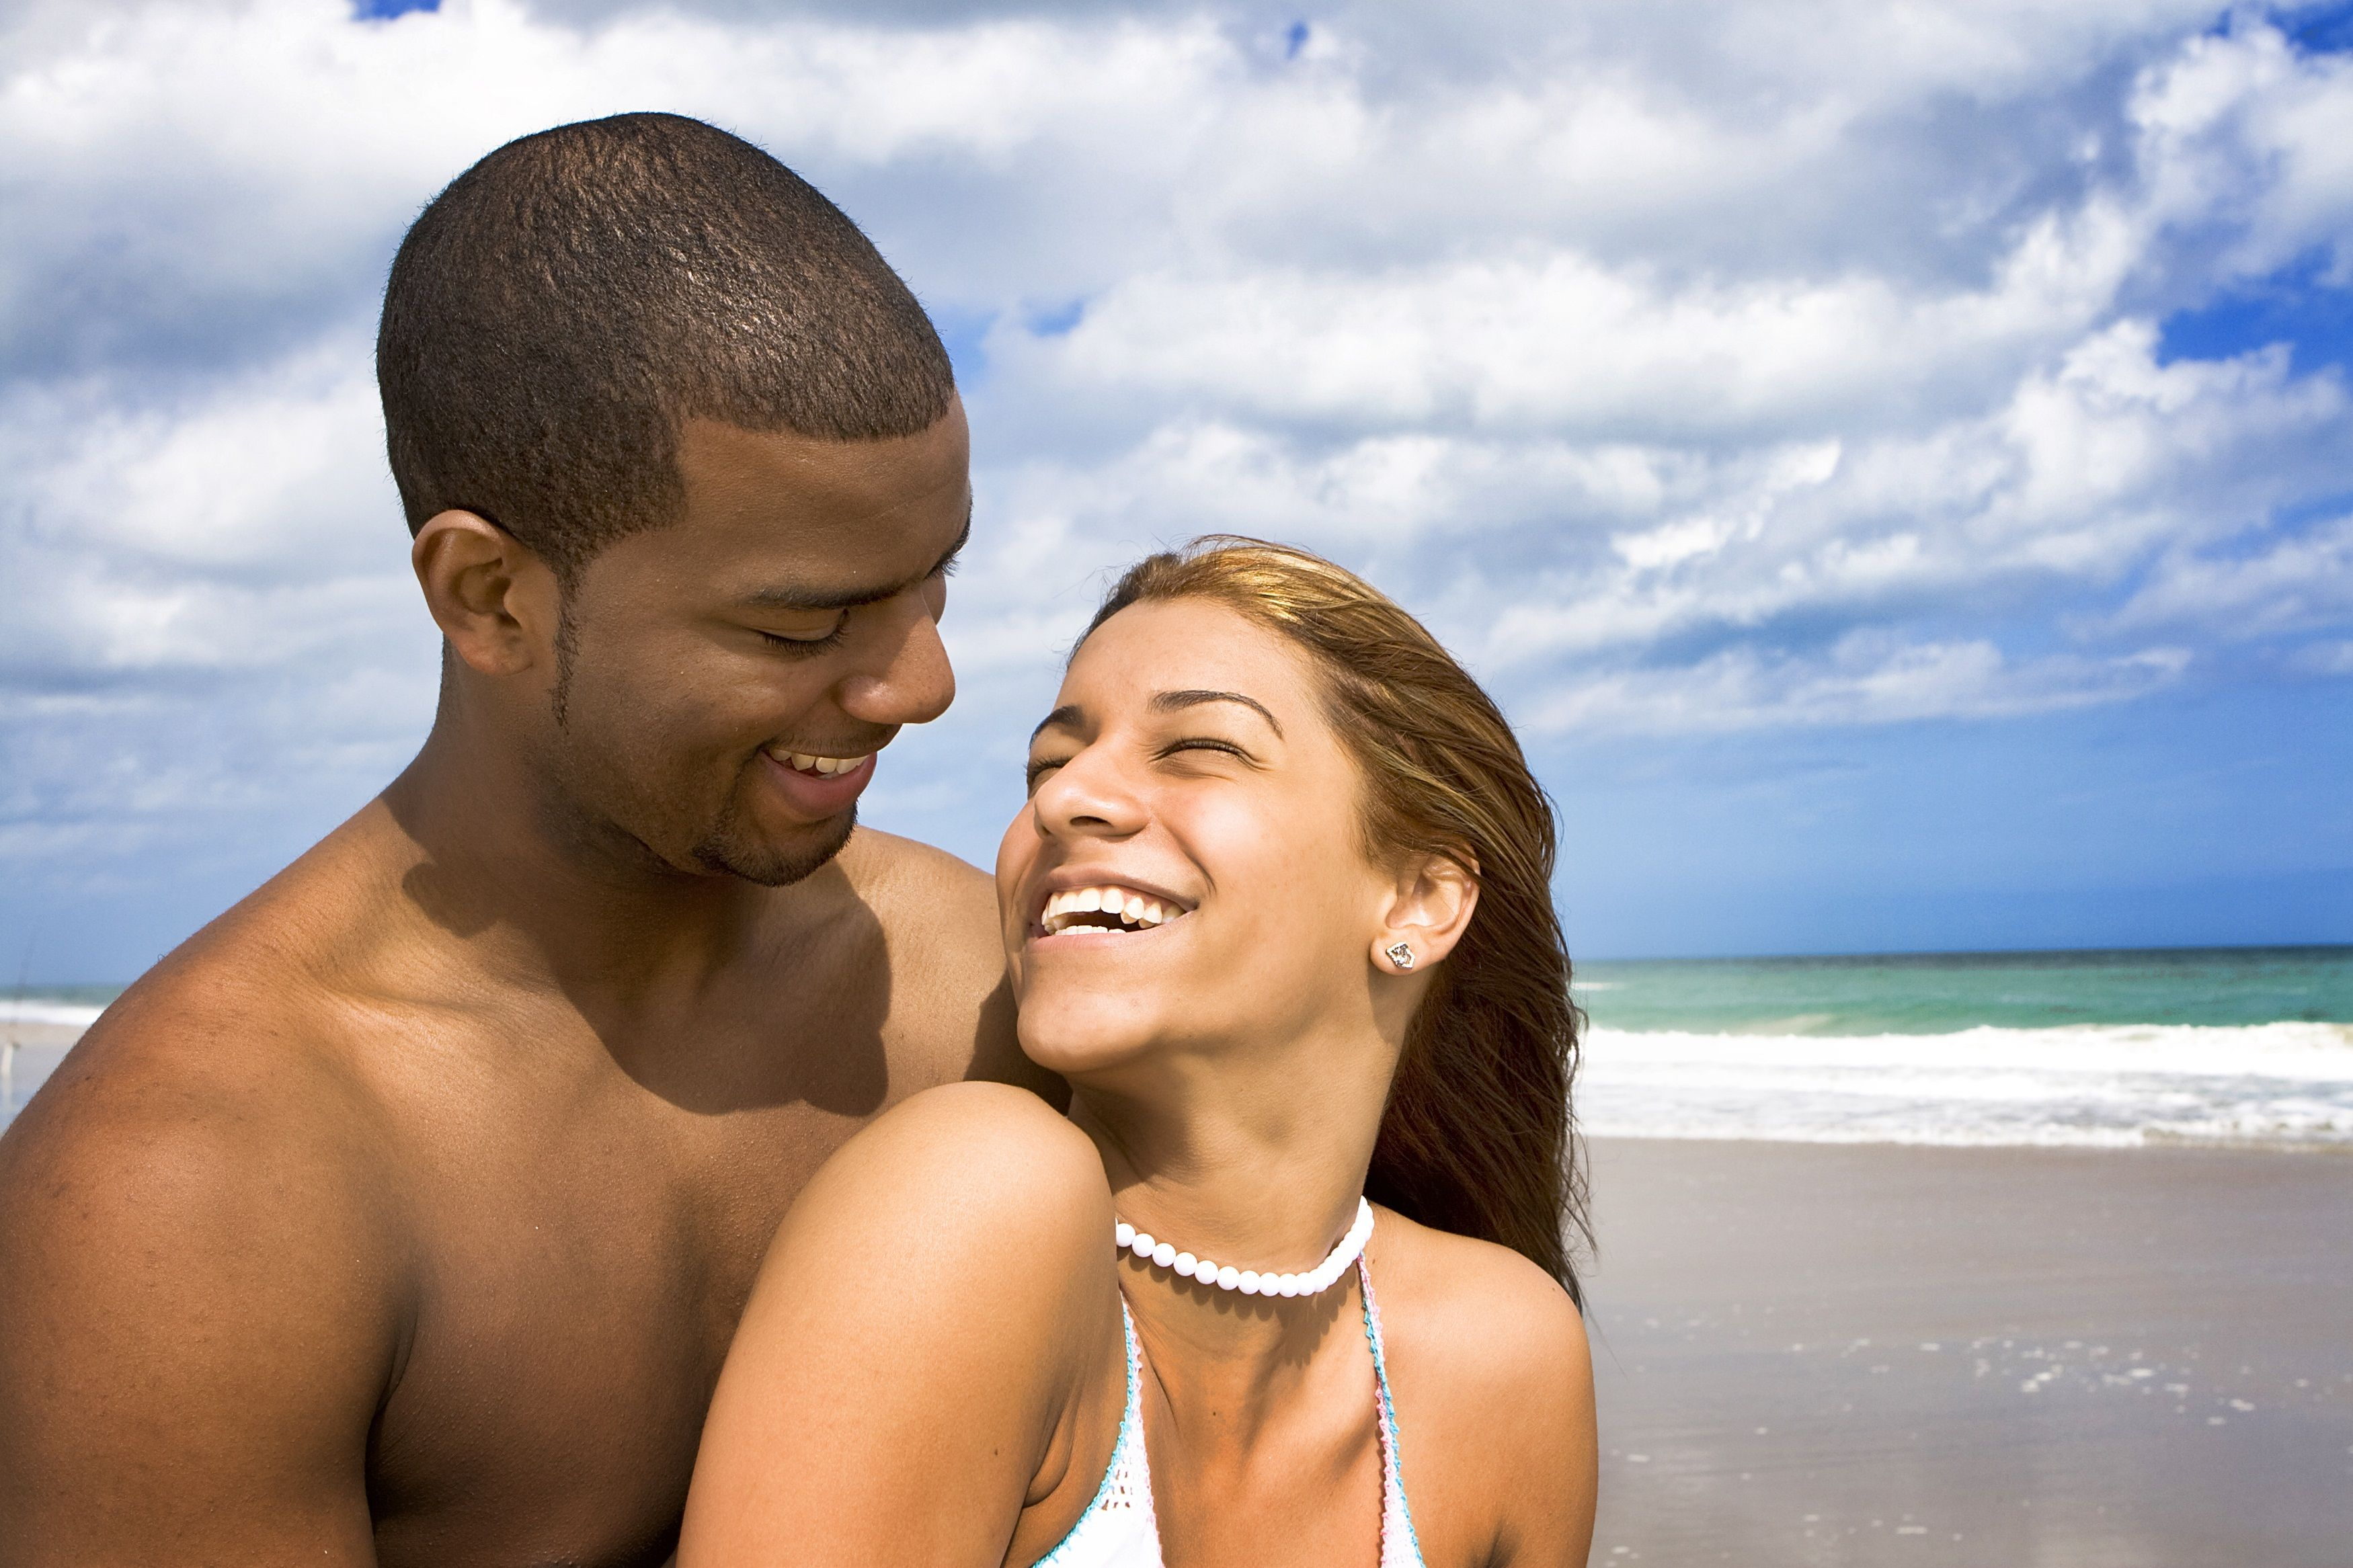 Free Dating Site - The Port Of Entry